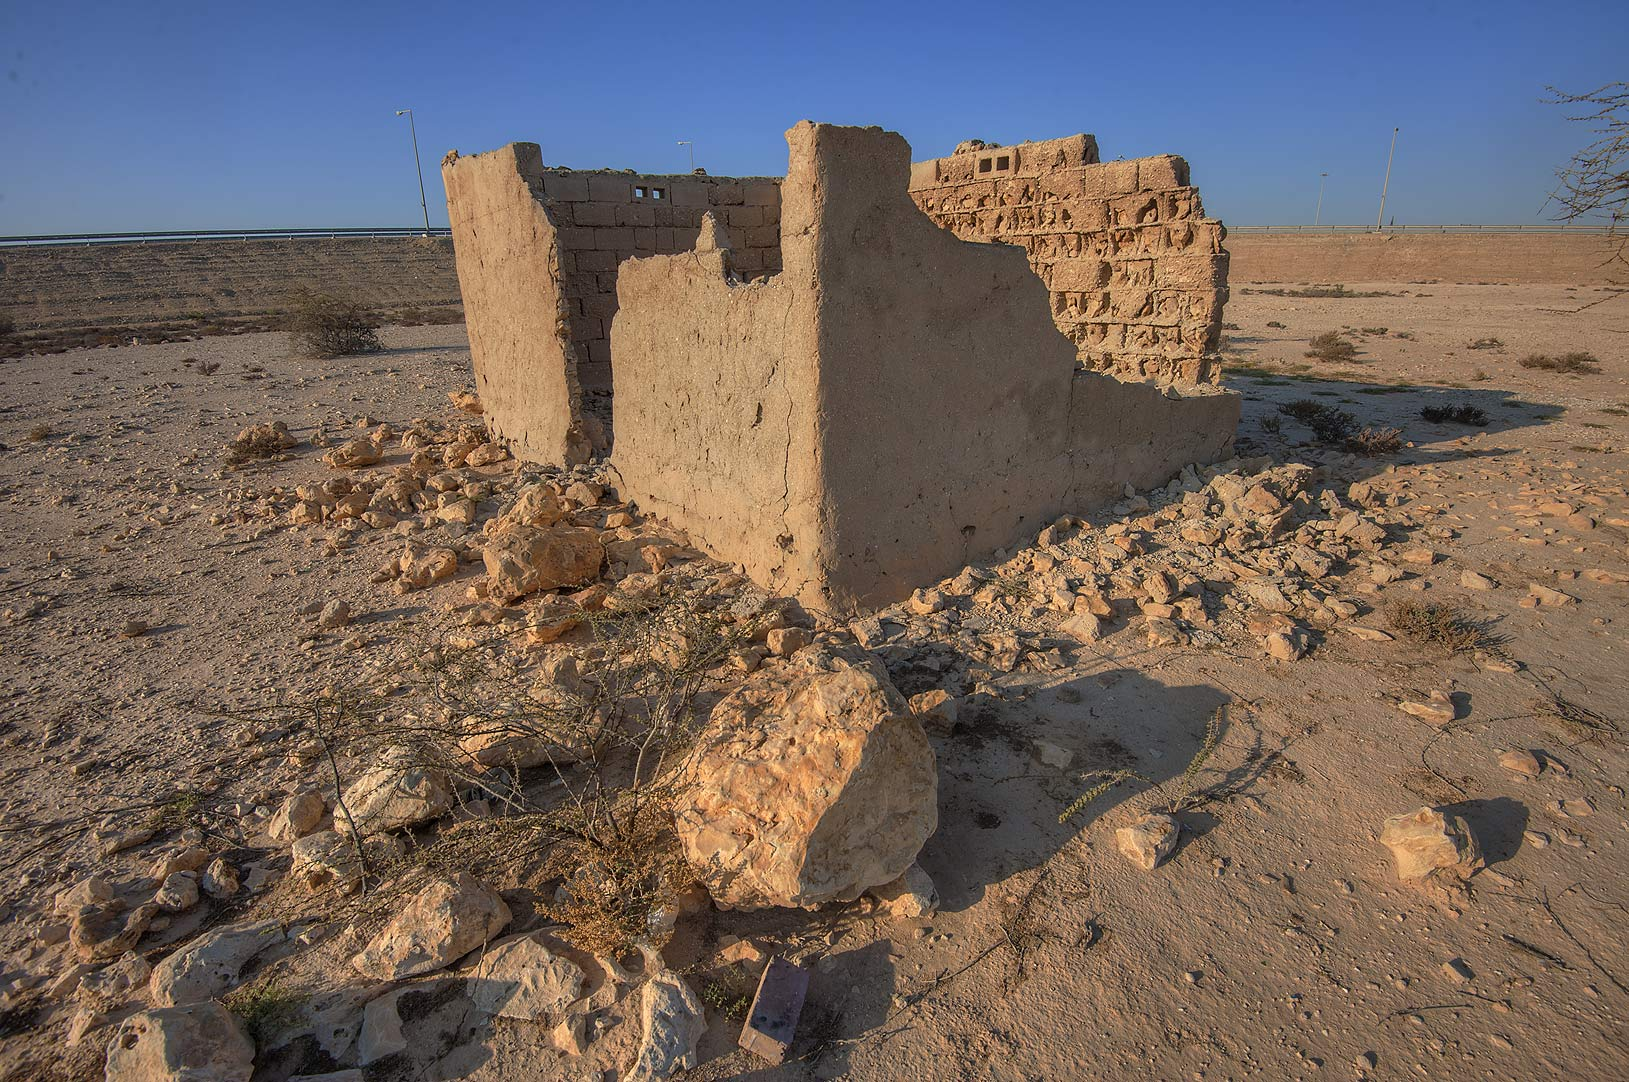 Ruins of a barrack in Uwaynat Bin Husayn near Simaisma. Qatar